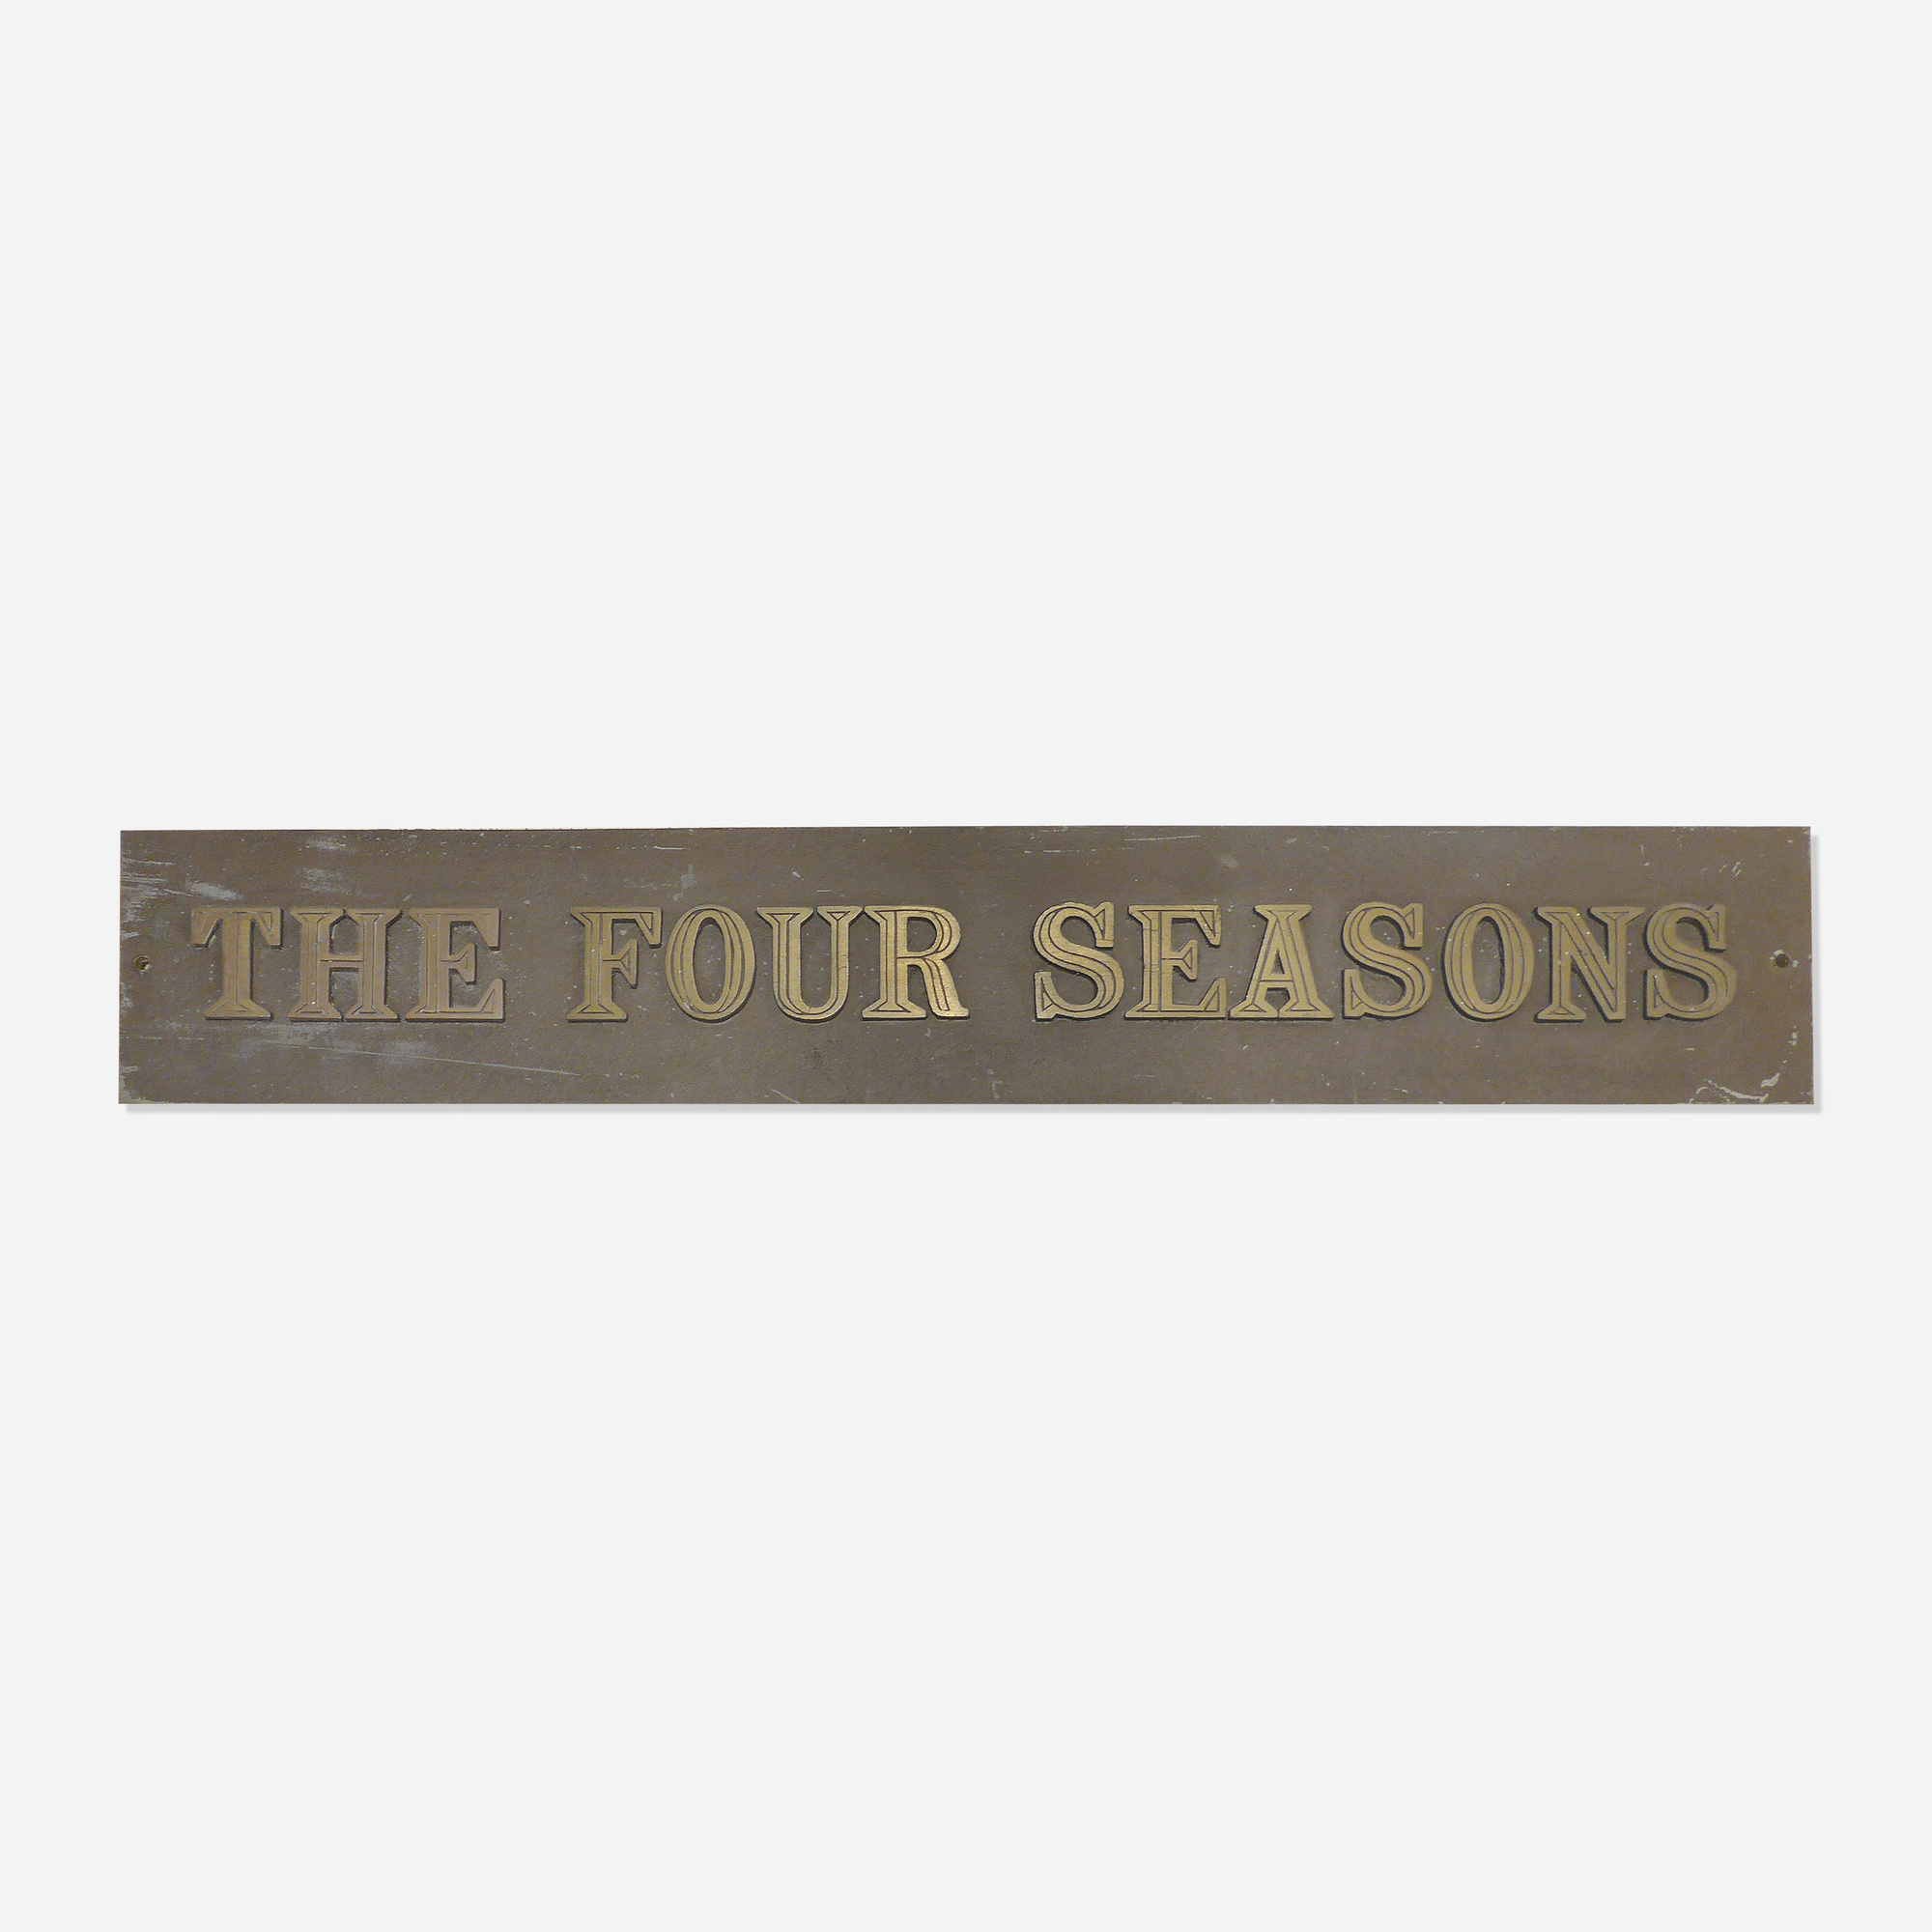 160: Emil Antonucci / The Four Seasons sign (1 of 1)